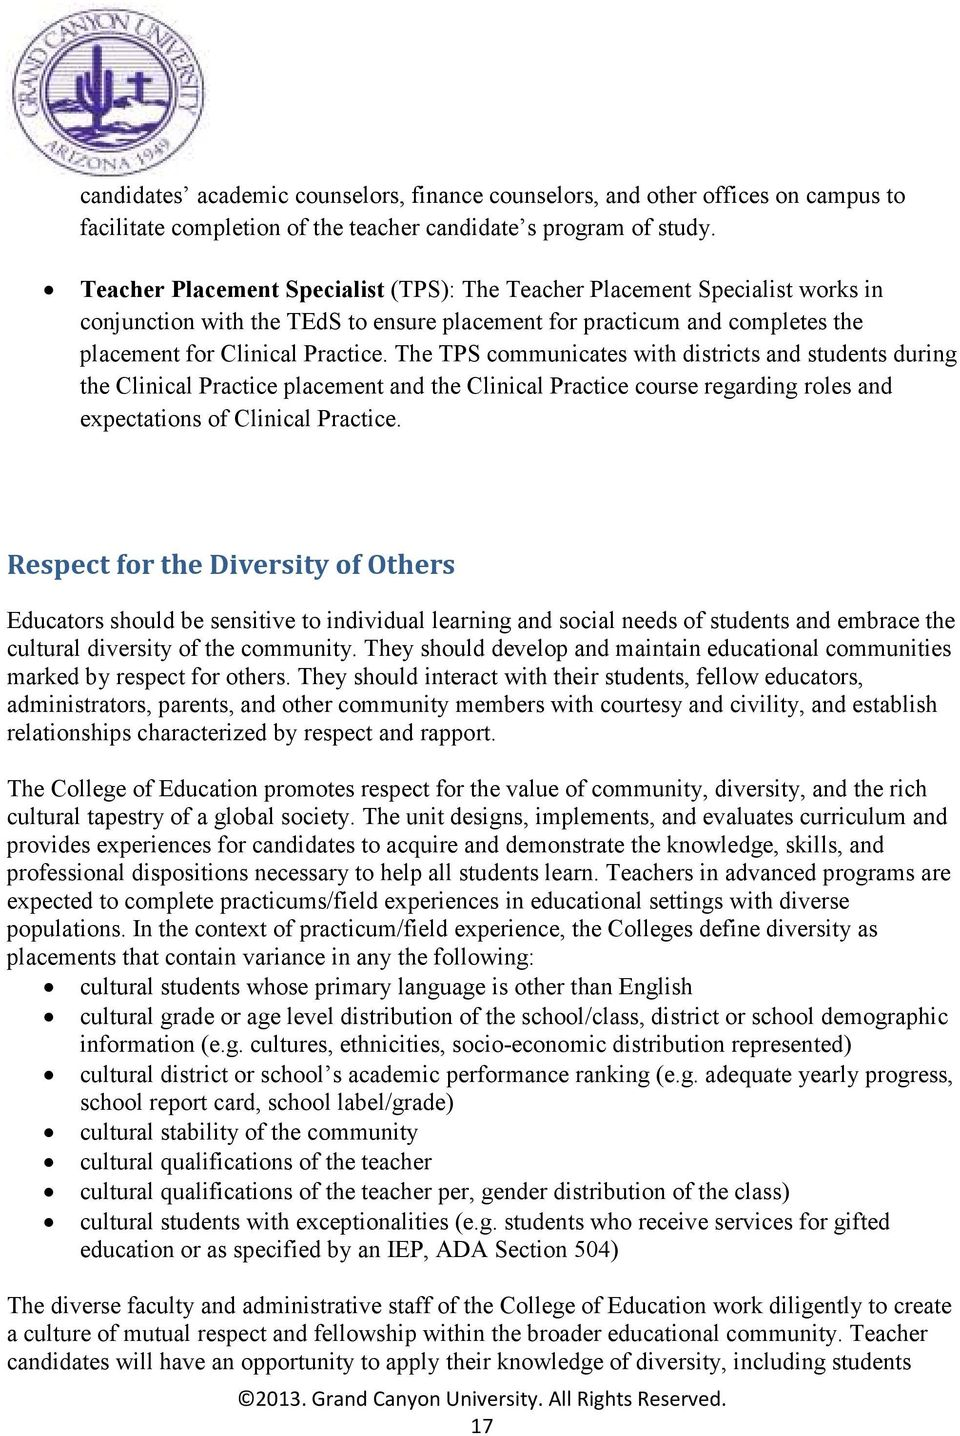 practicum report on the administrative roles Main duties include report and proposal writing, prospect research, coordinating  adf tours, assisting with events, designing and managing donor e-blasts, and.